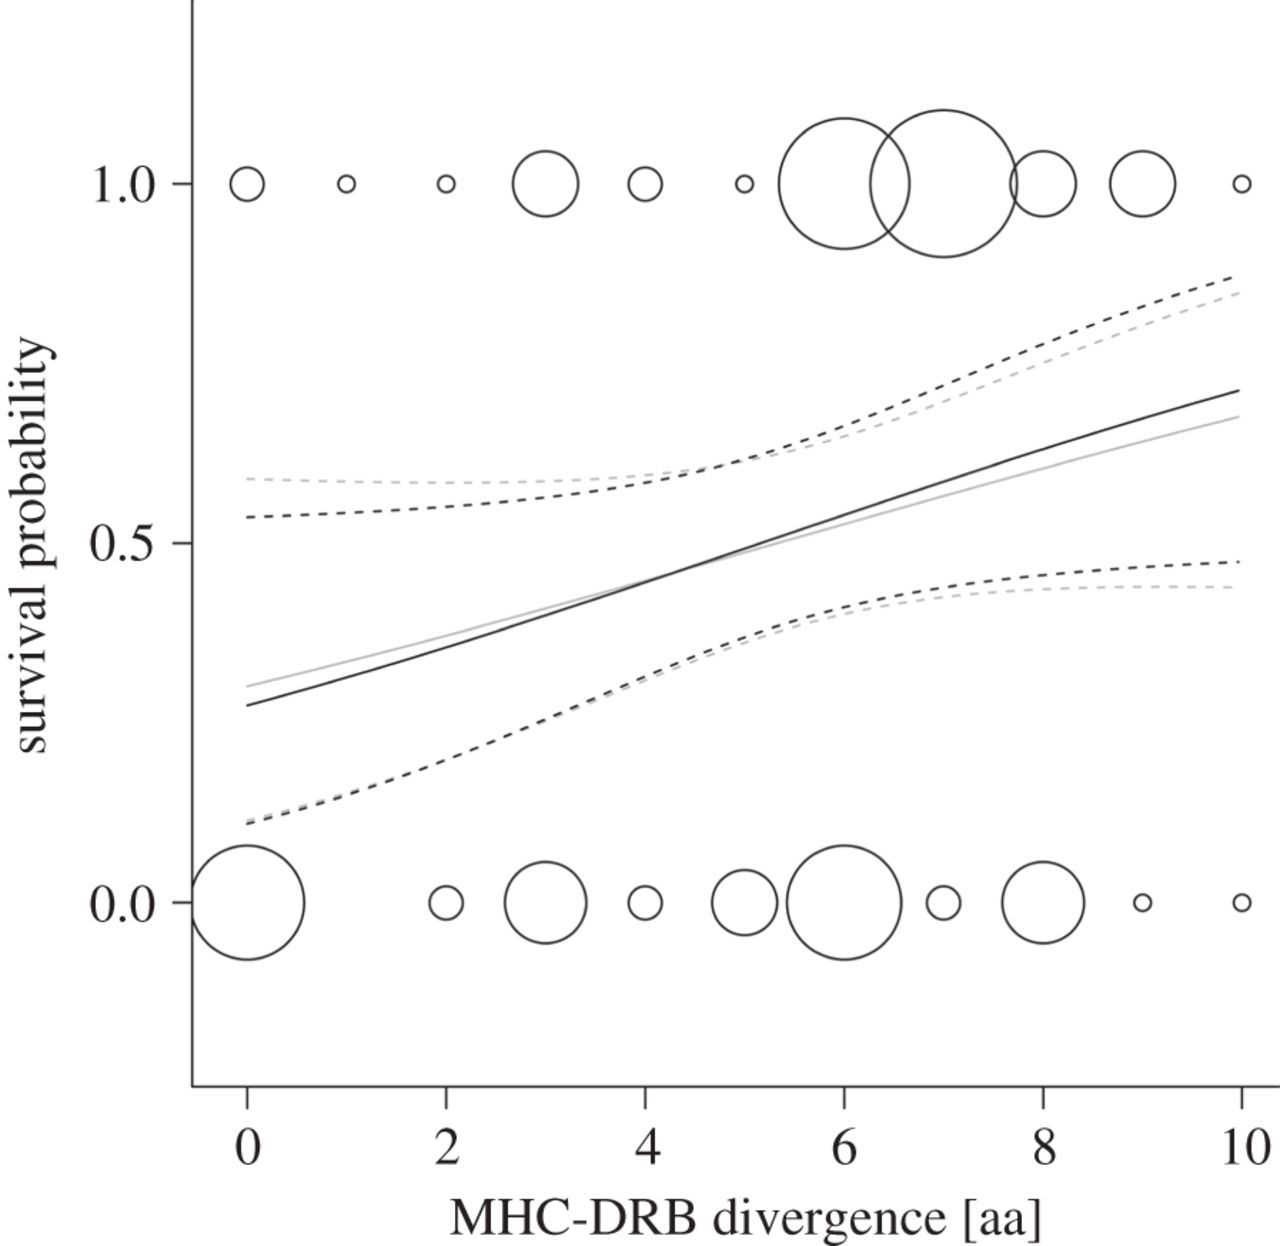 Divergent Allele Advantage At Mhc Drb Through Direct And Maternal Genotypic Effects And Its